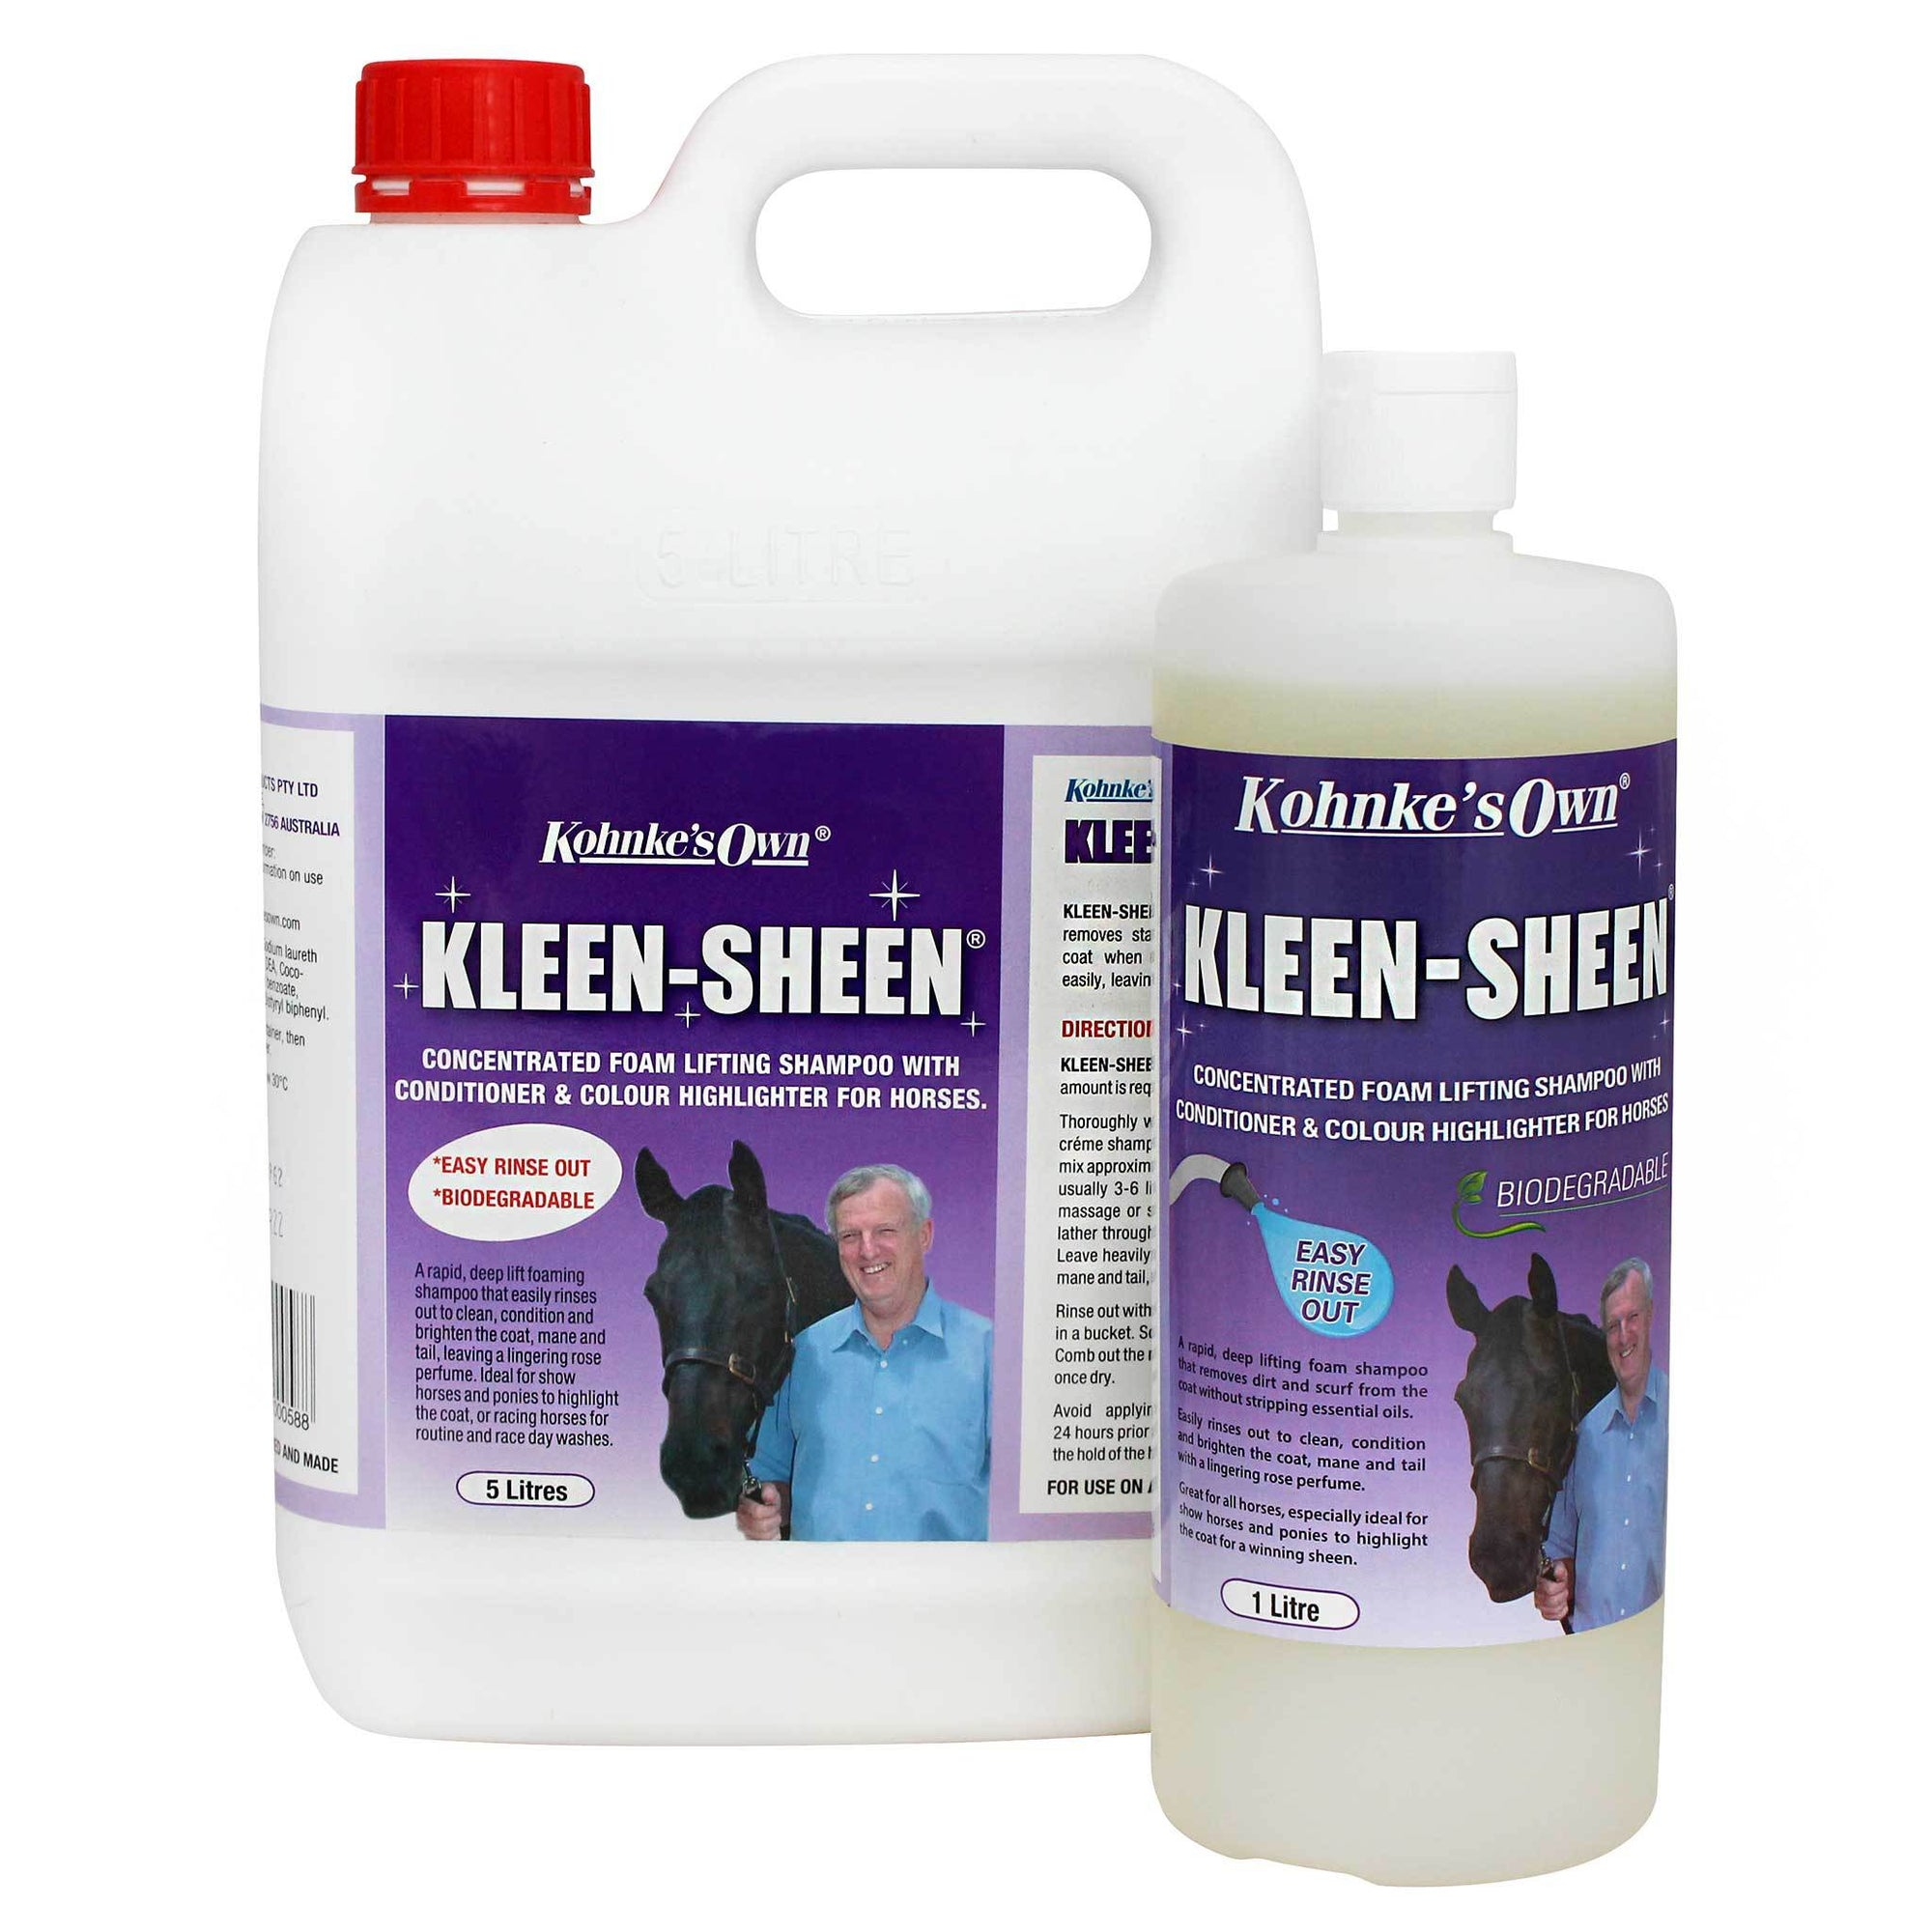 Kohnke's Own Kleen-Sheen Shampoo